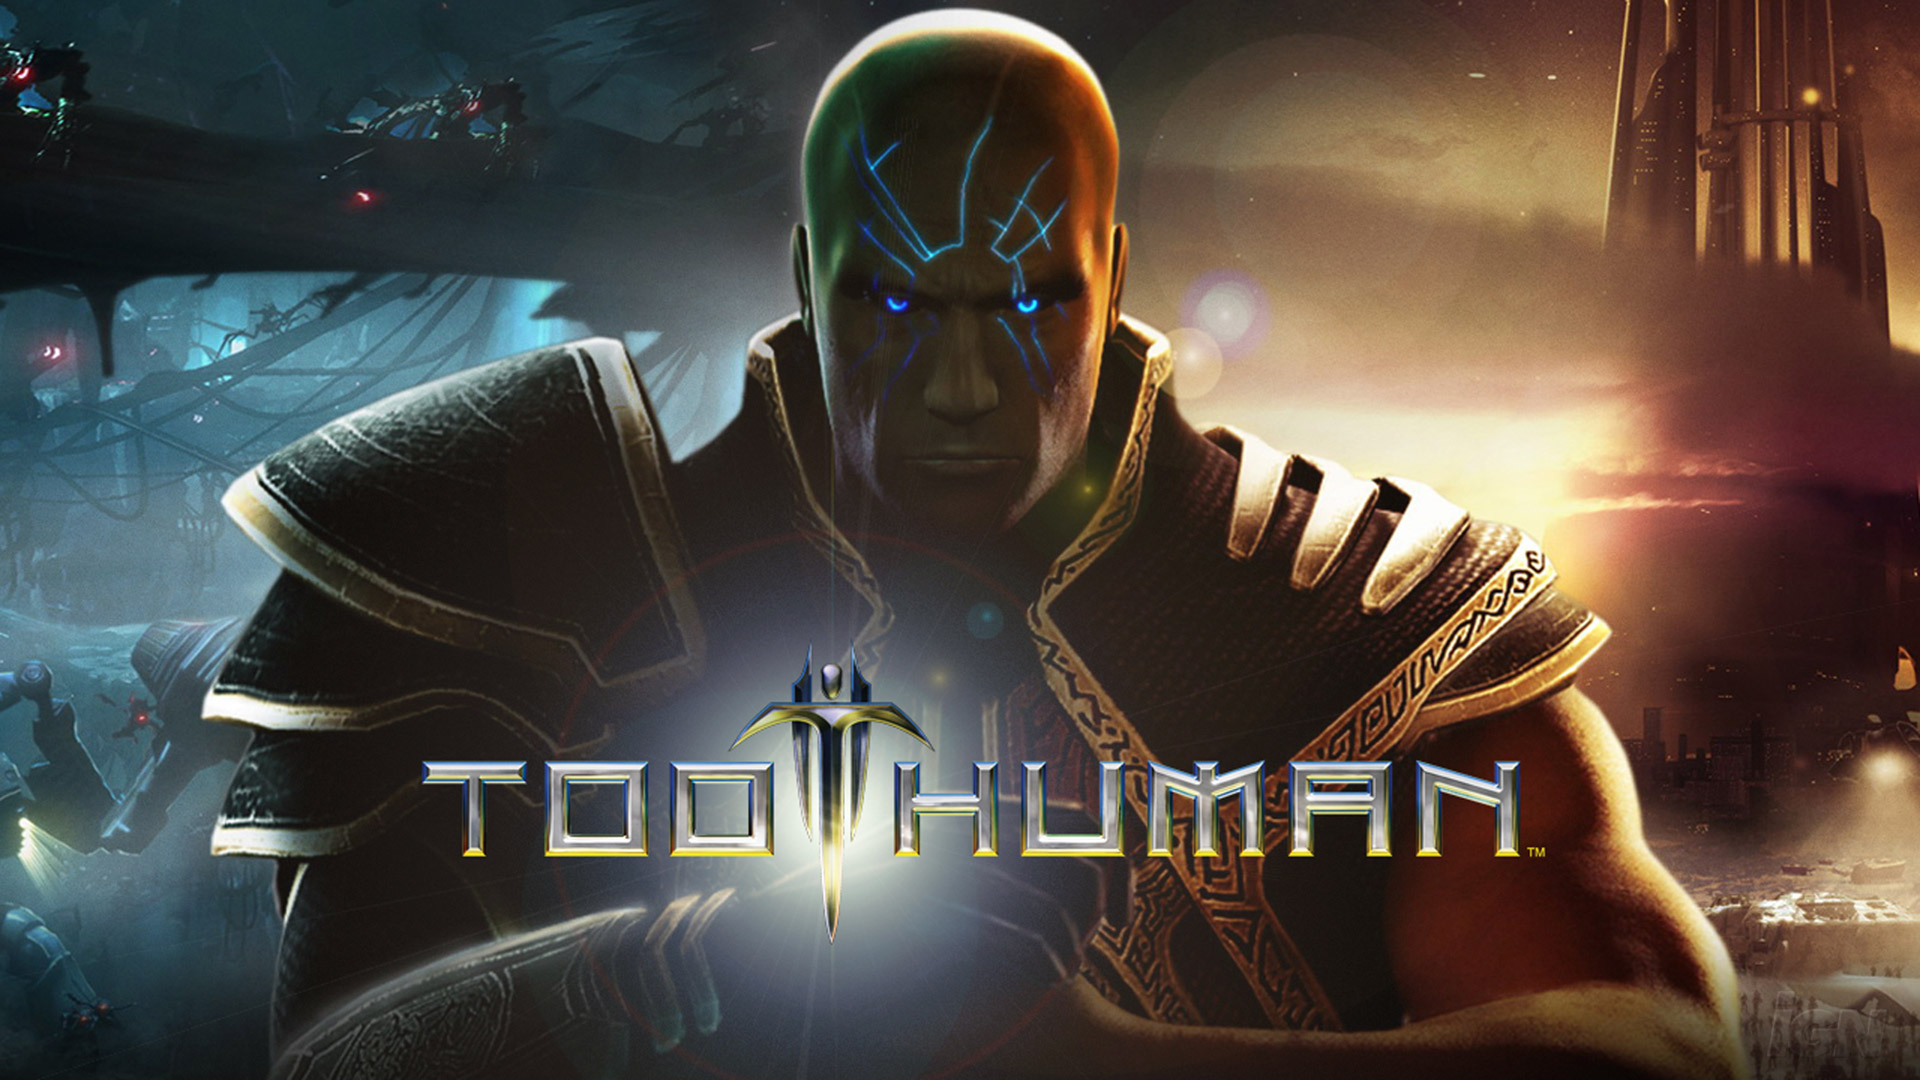 too human video game wallpaper share this video game background on 1920x1080